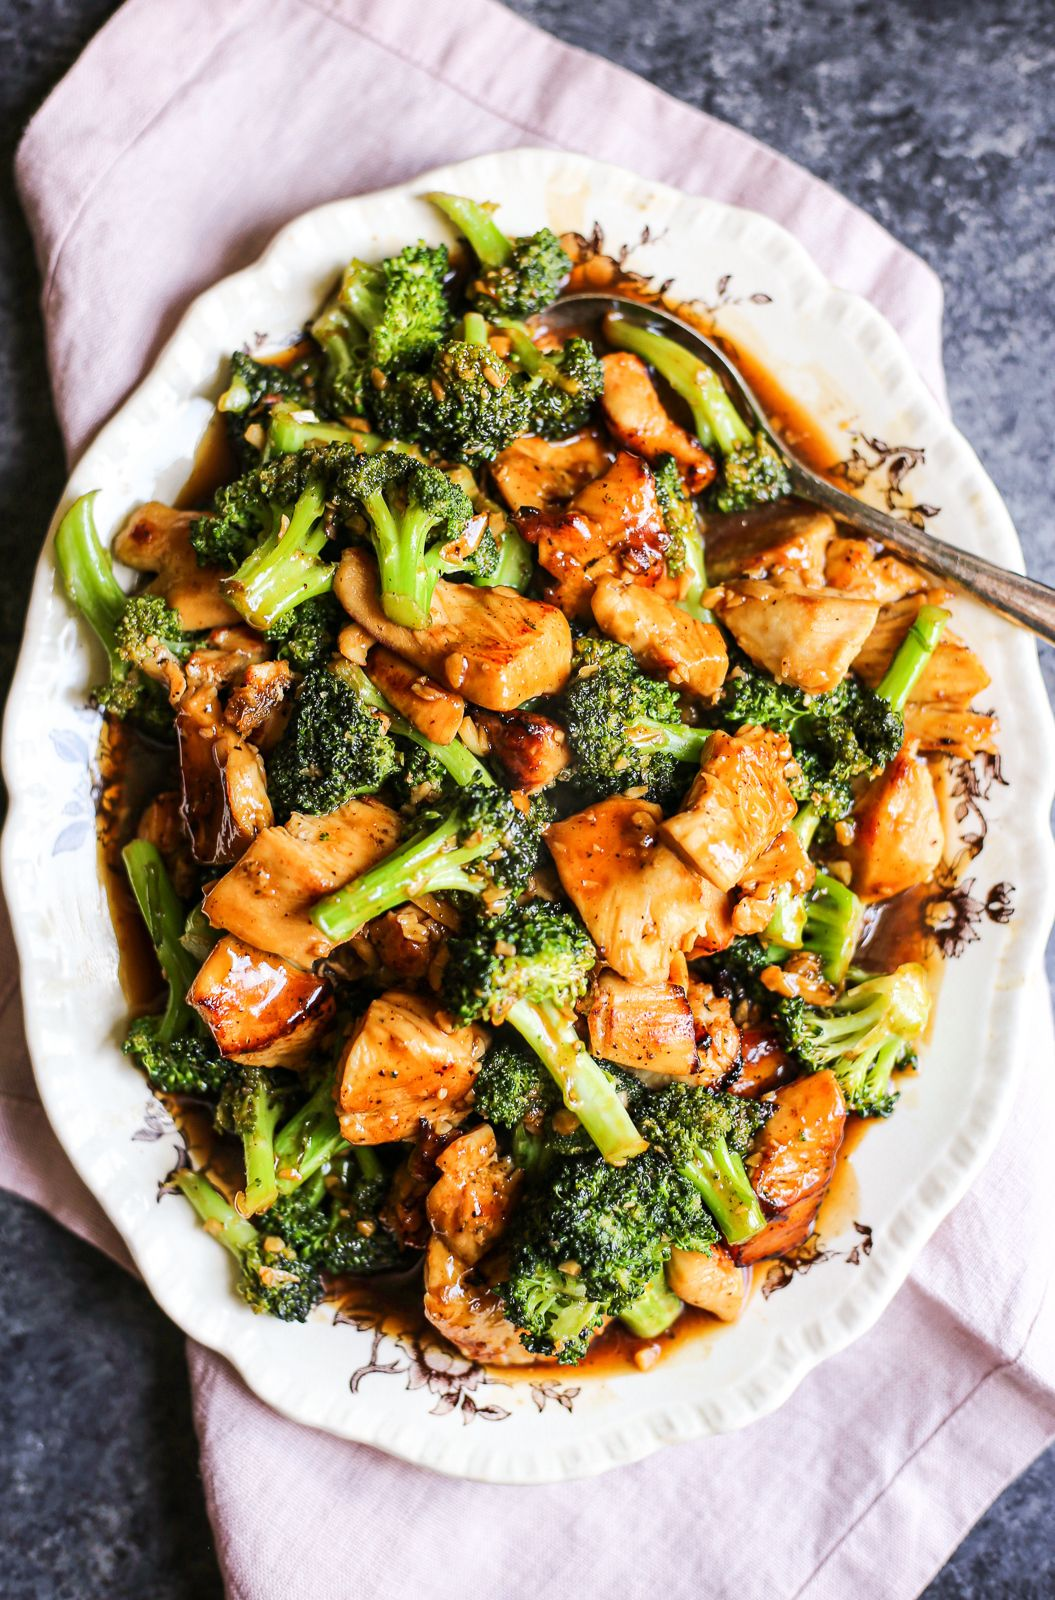 Chinese Chicken and Broccoli The Defined Dish Recipes